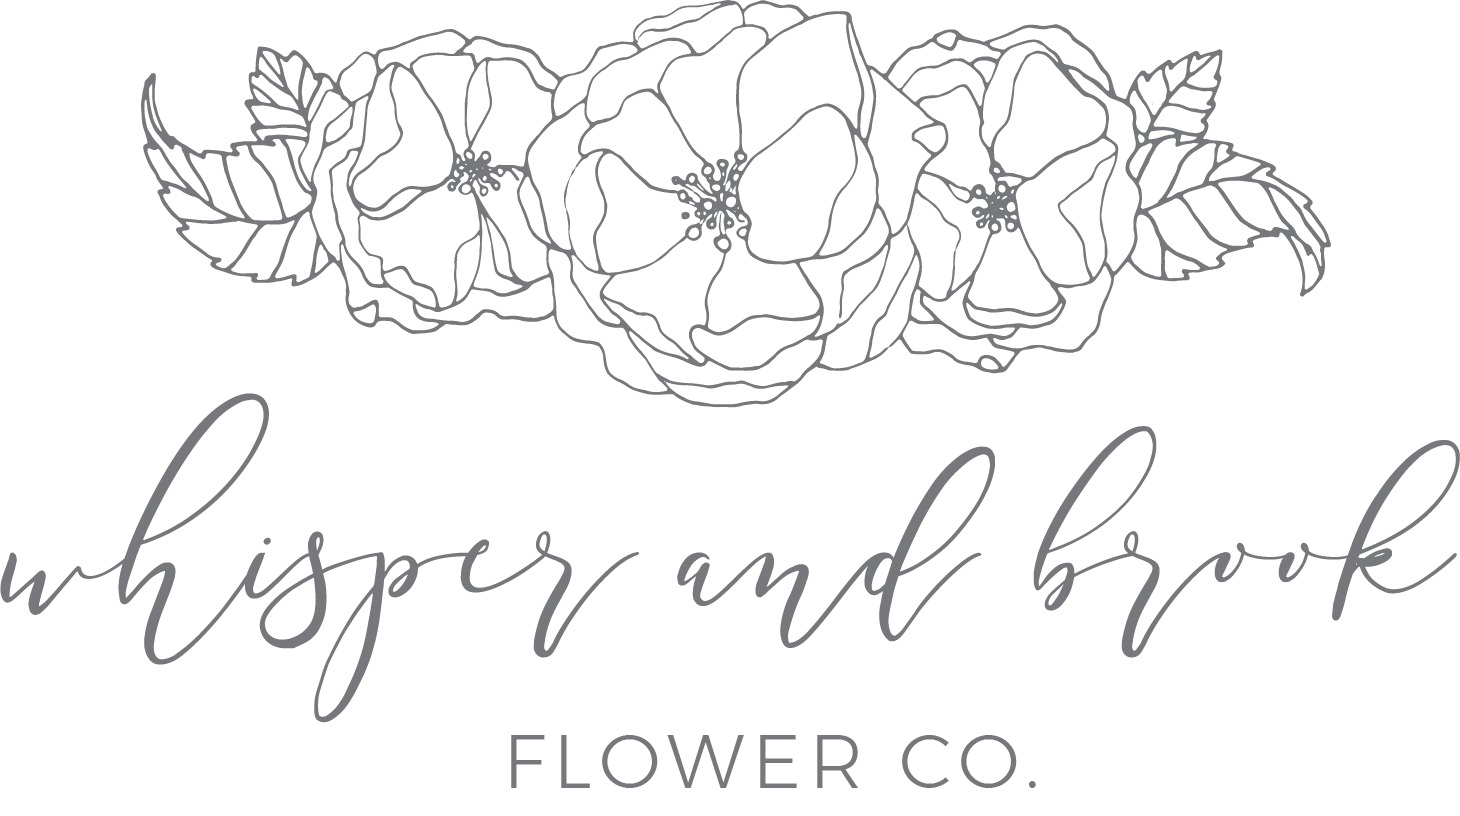 Whisper and Brook Flower Co.